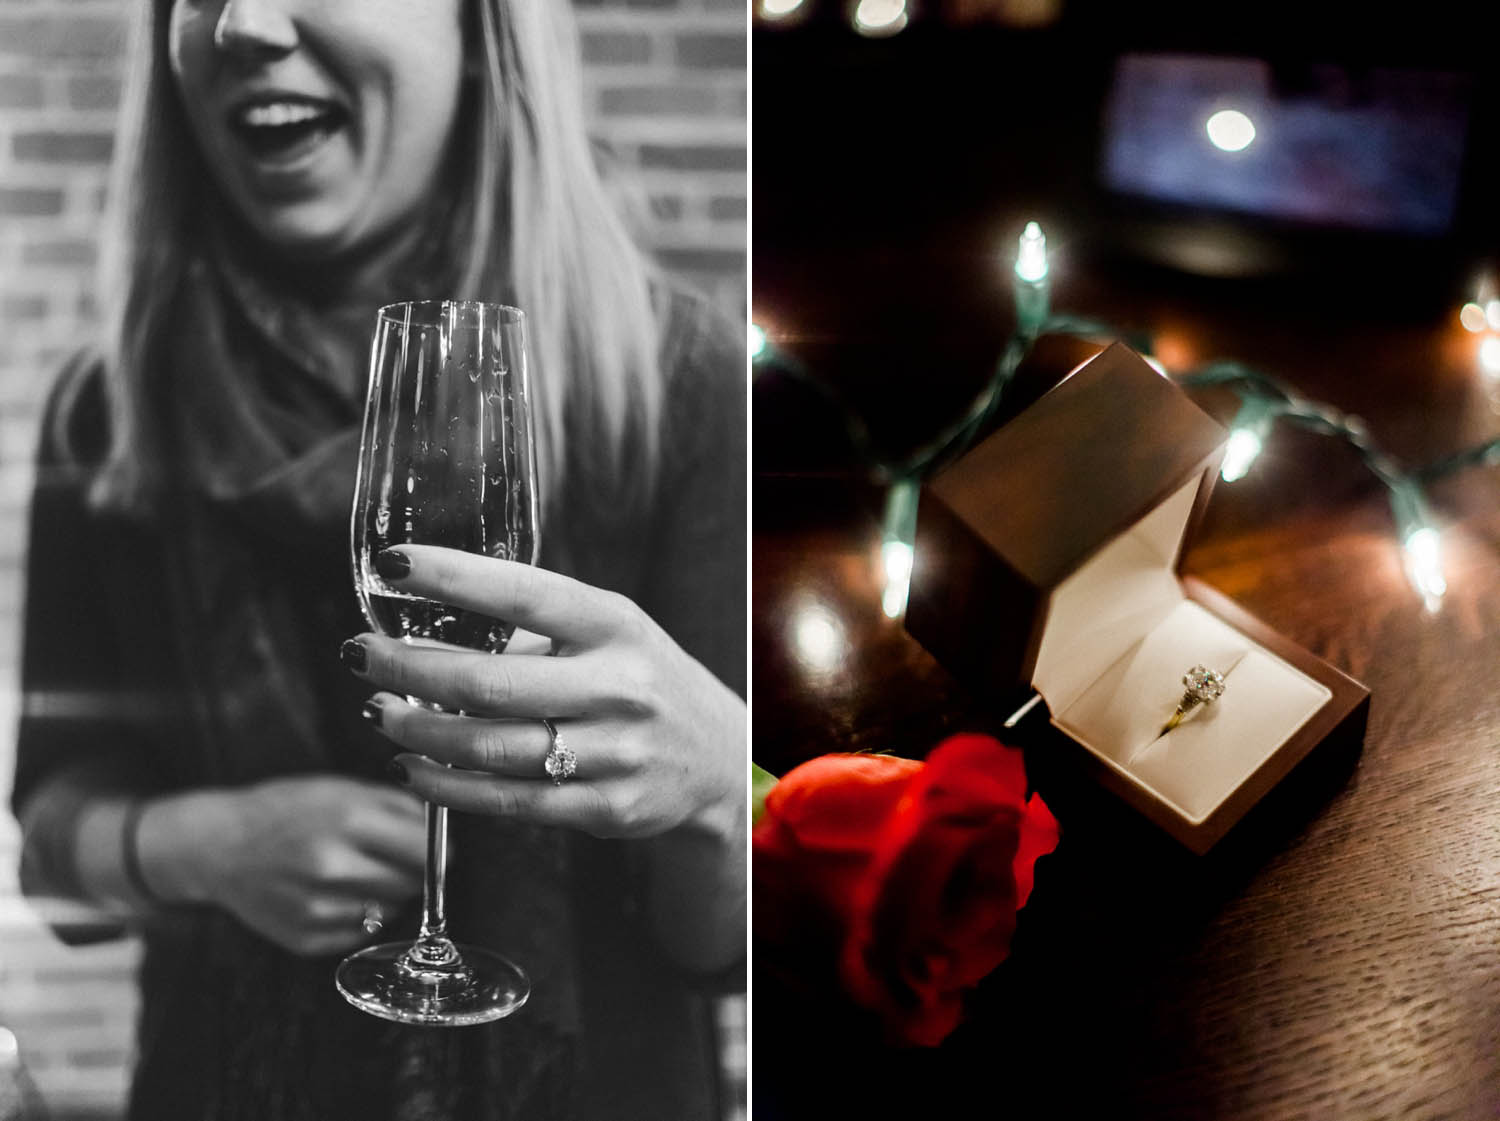 proposal-photos-minneapolis-bernadette-pollard-0027.jpg